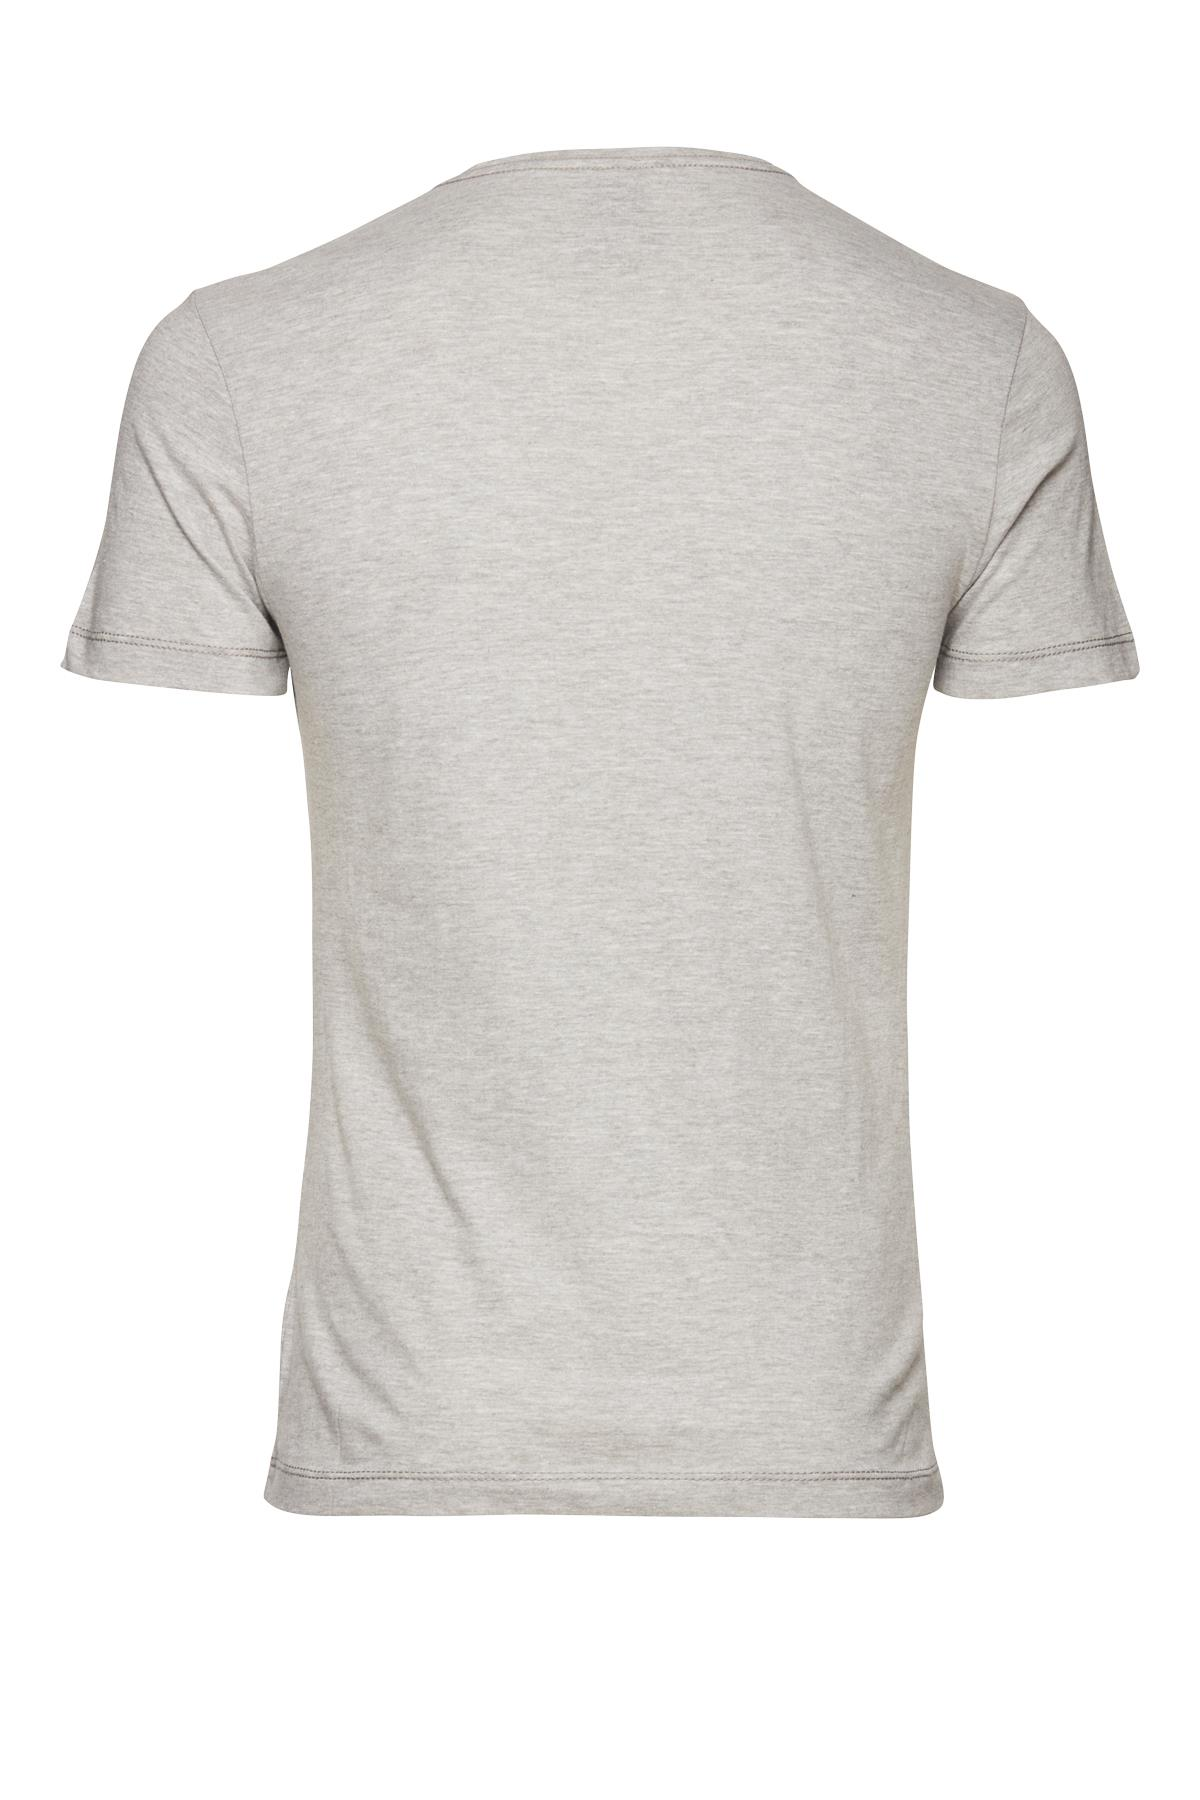 Stone mix T-shirt fra Blend Athletics – Køb Stone mix T-shirt fra str. M-XXL her